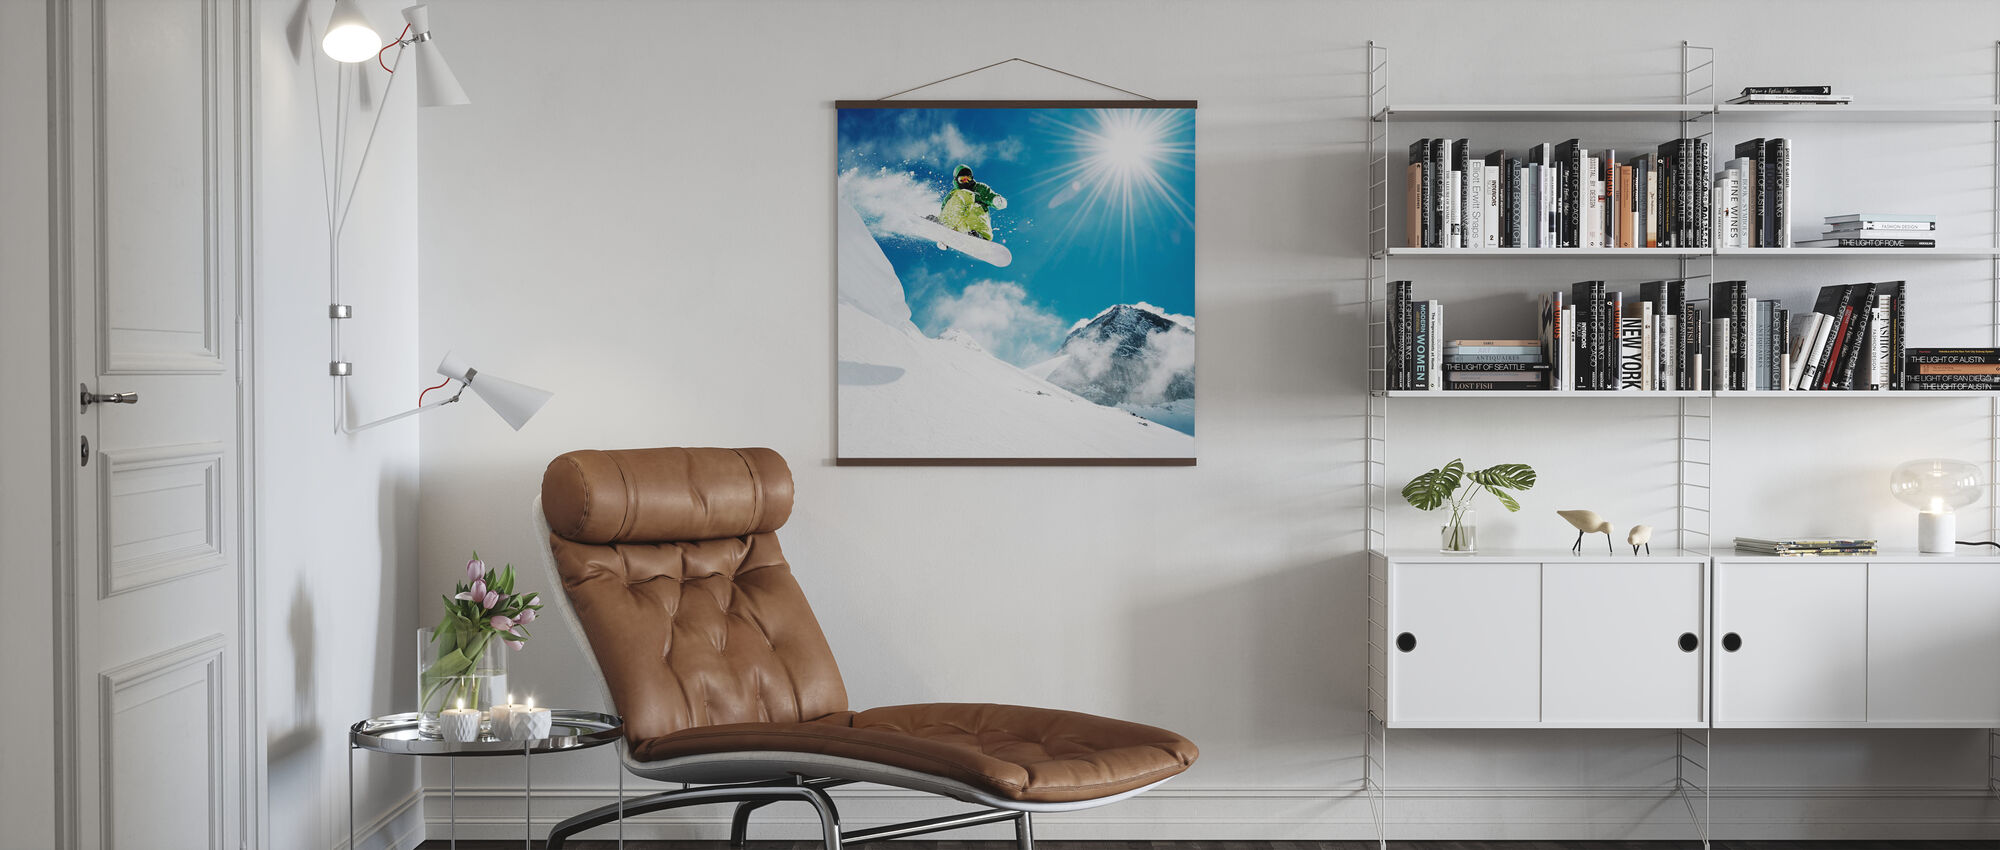 Snowboarder at Jump - Poster - Living Room